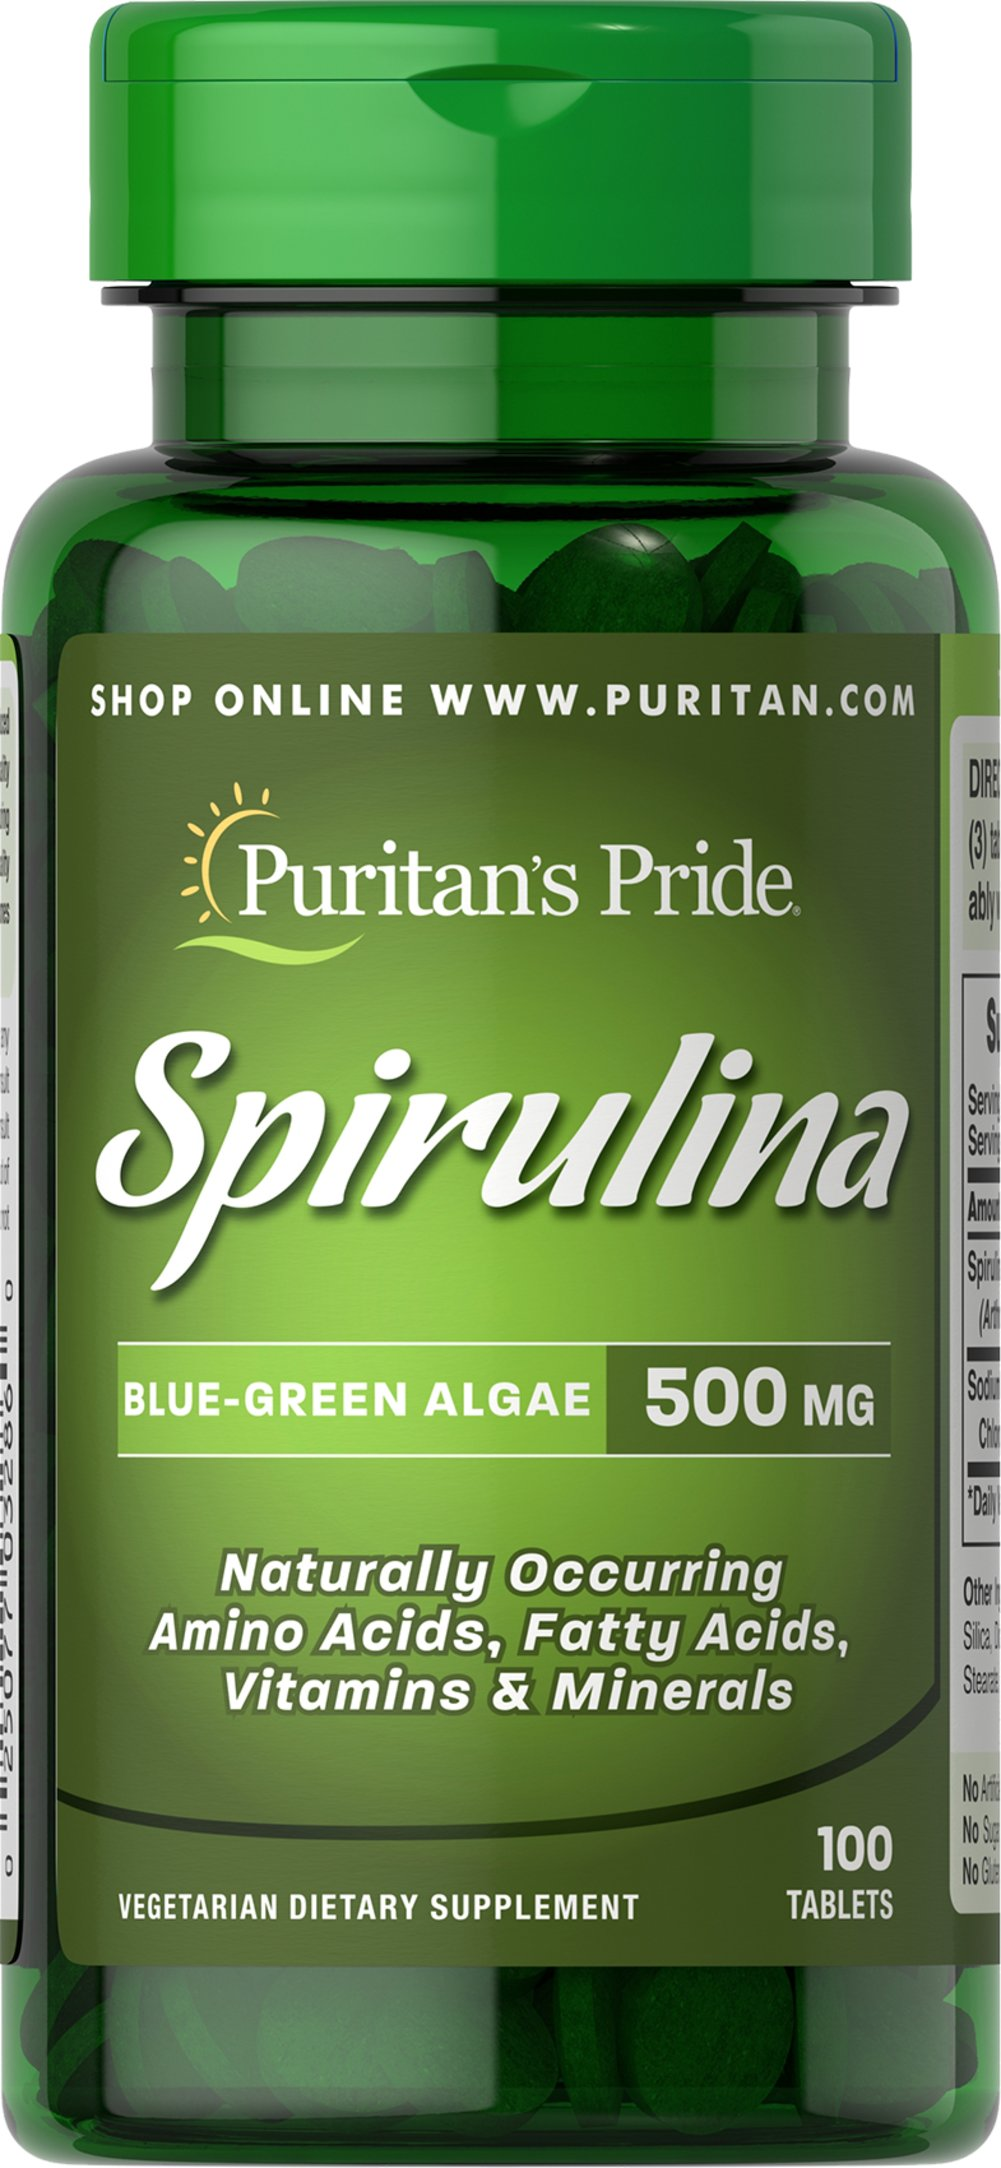 Spirulina 500 mg  100 Tablets 500 mg $13.99